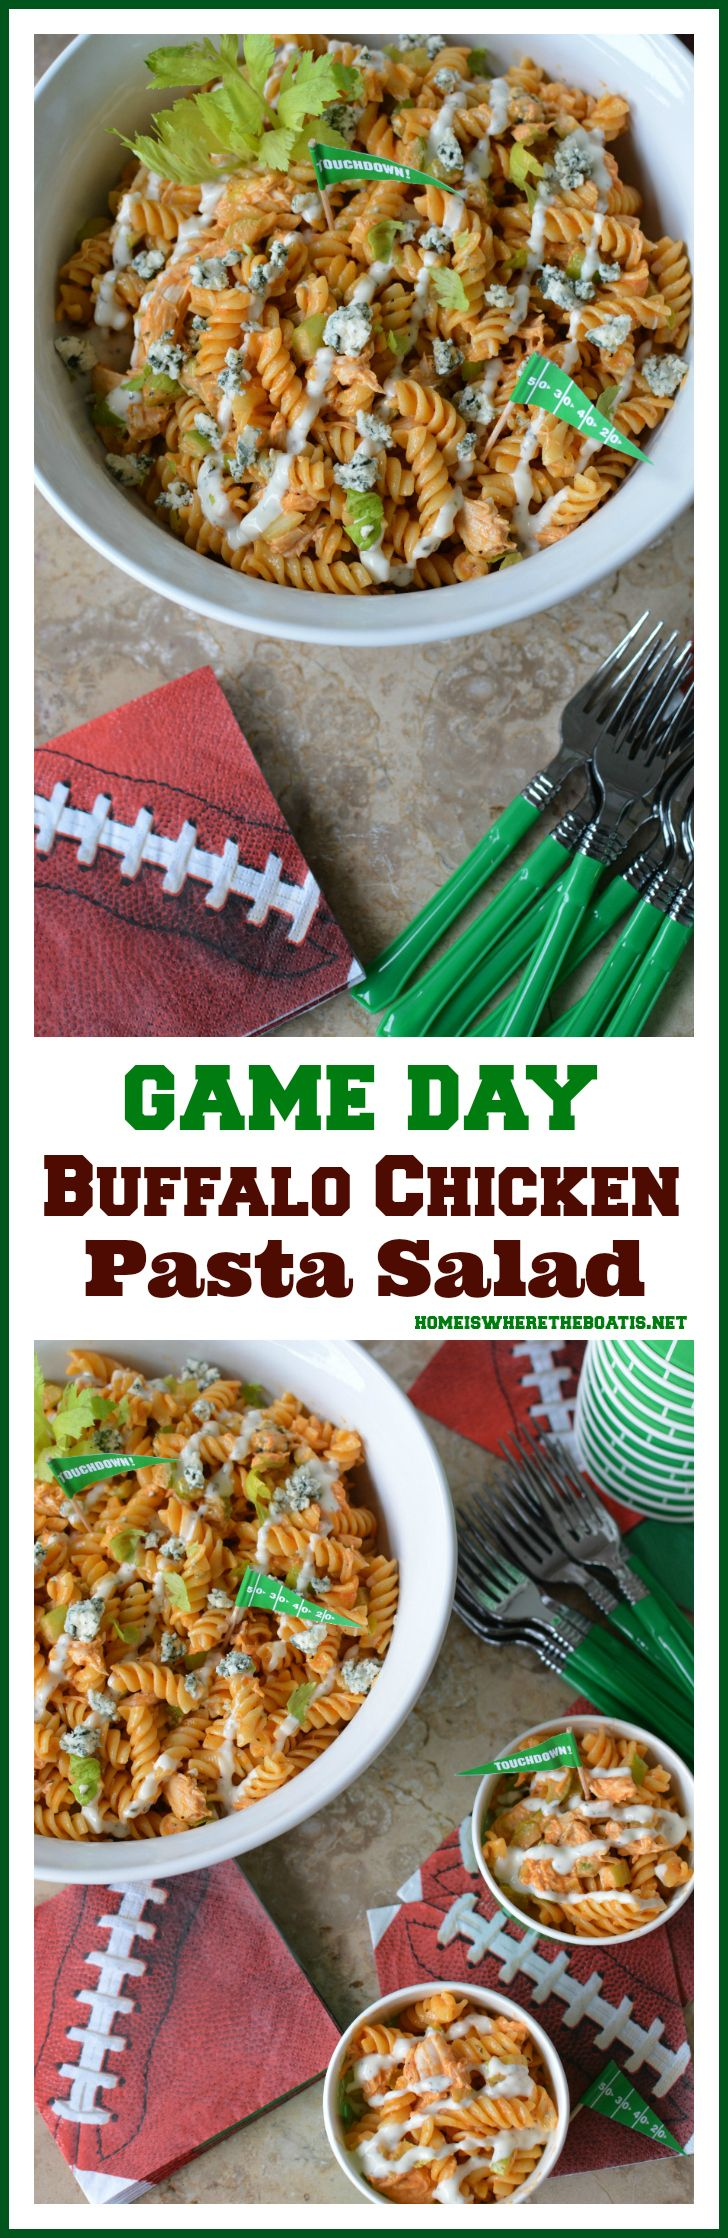 Buffalo Chicken Pasta Salad and Game Day Recipes